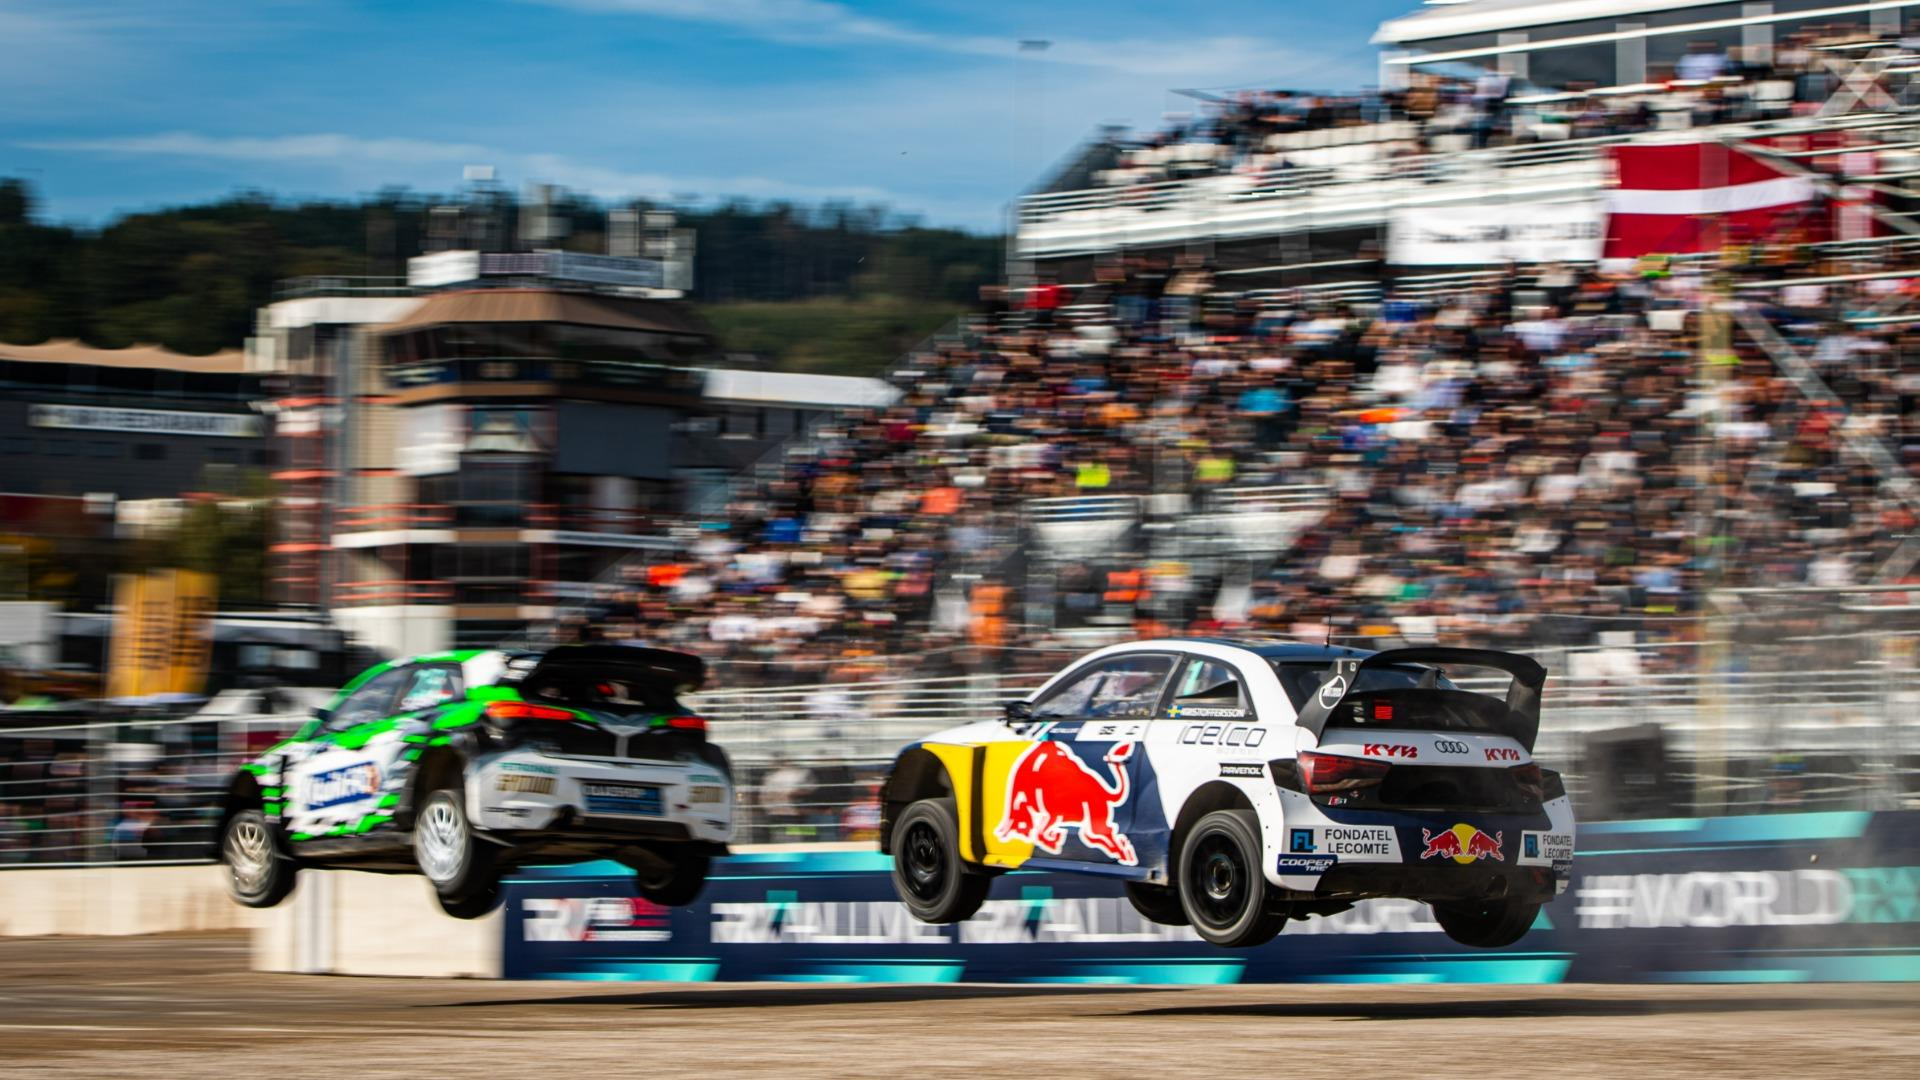 Winner Clip: Benelux World RX of Spa-Francorchamps 2021